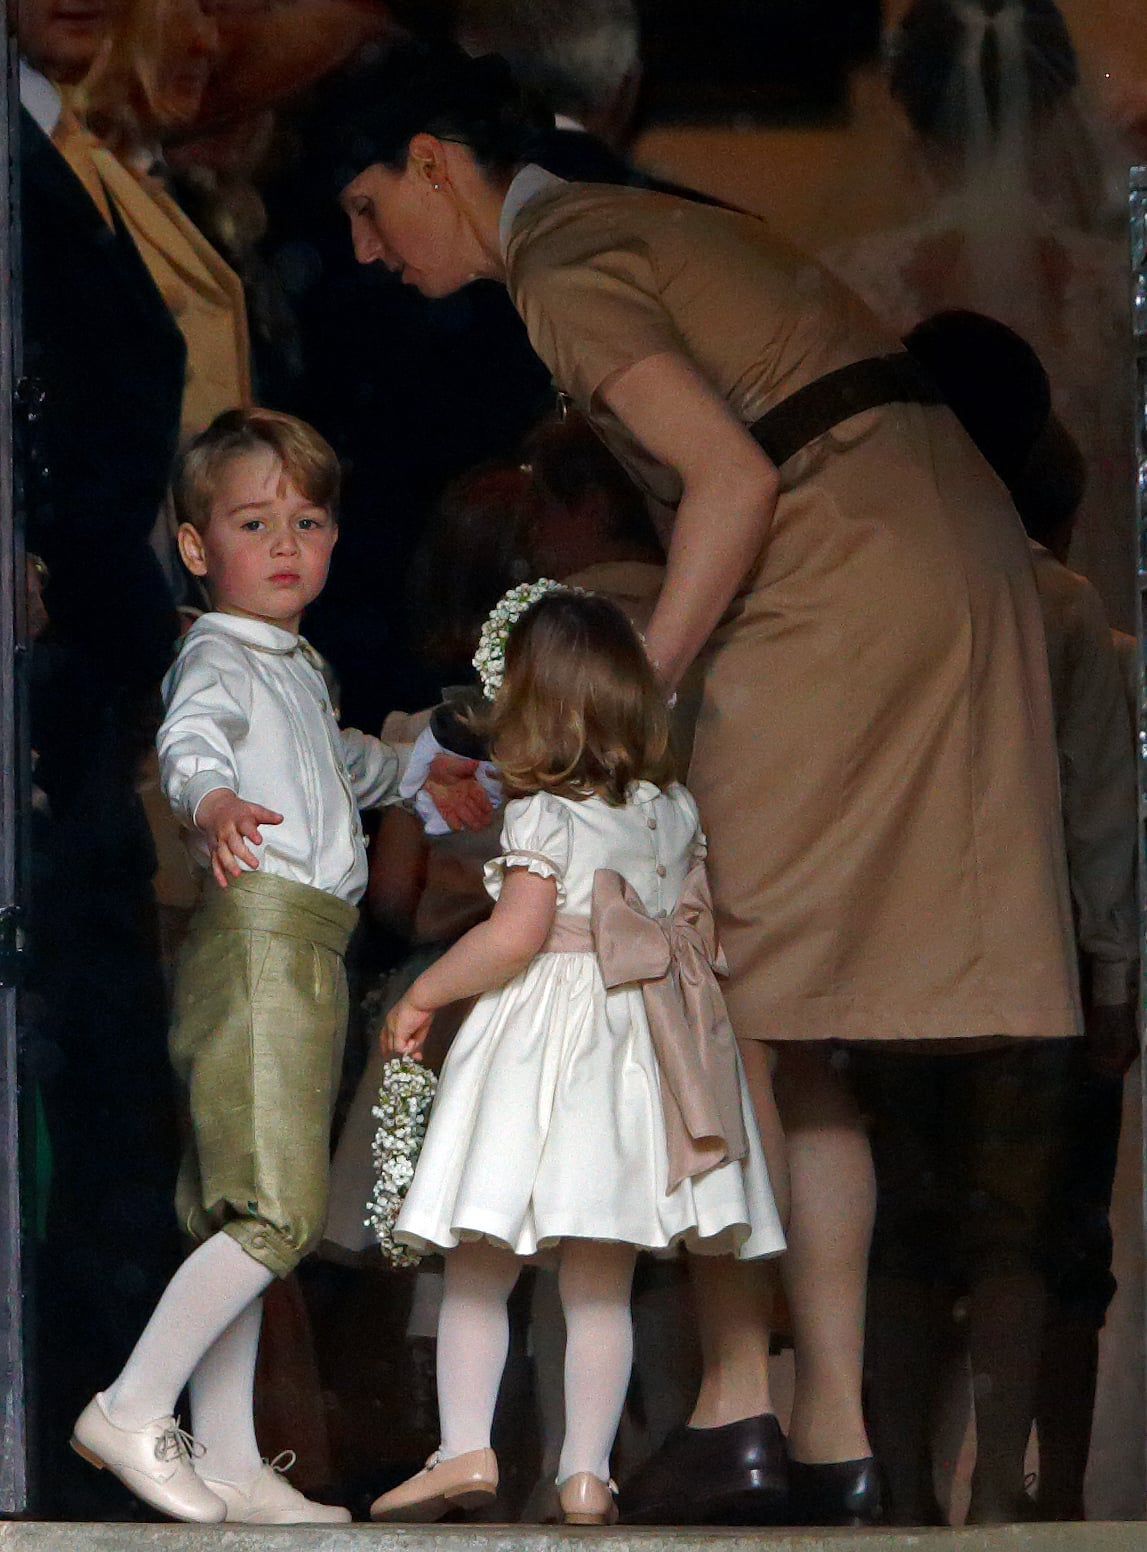 ENGLEFIELD GREEN, UNITED KINGDOM - MAY 20: (EMBARGOED FOR PUBLICATION IN UK NEWSPAPERS UNTIL 48 HOURS AFTER CREATE DATE AND TIME) Prince George of Cambridge and Princess Charlotte of Cambridge accompanied by their nanny Maria Teresa Borrallo attend the wedding of Pippa Middleton and James Matthews at St Mark's Church on May 20, 2017 in Englefield Green, England. (Photo by Max Mumby/Indigo/Getty Images)